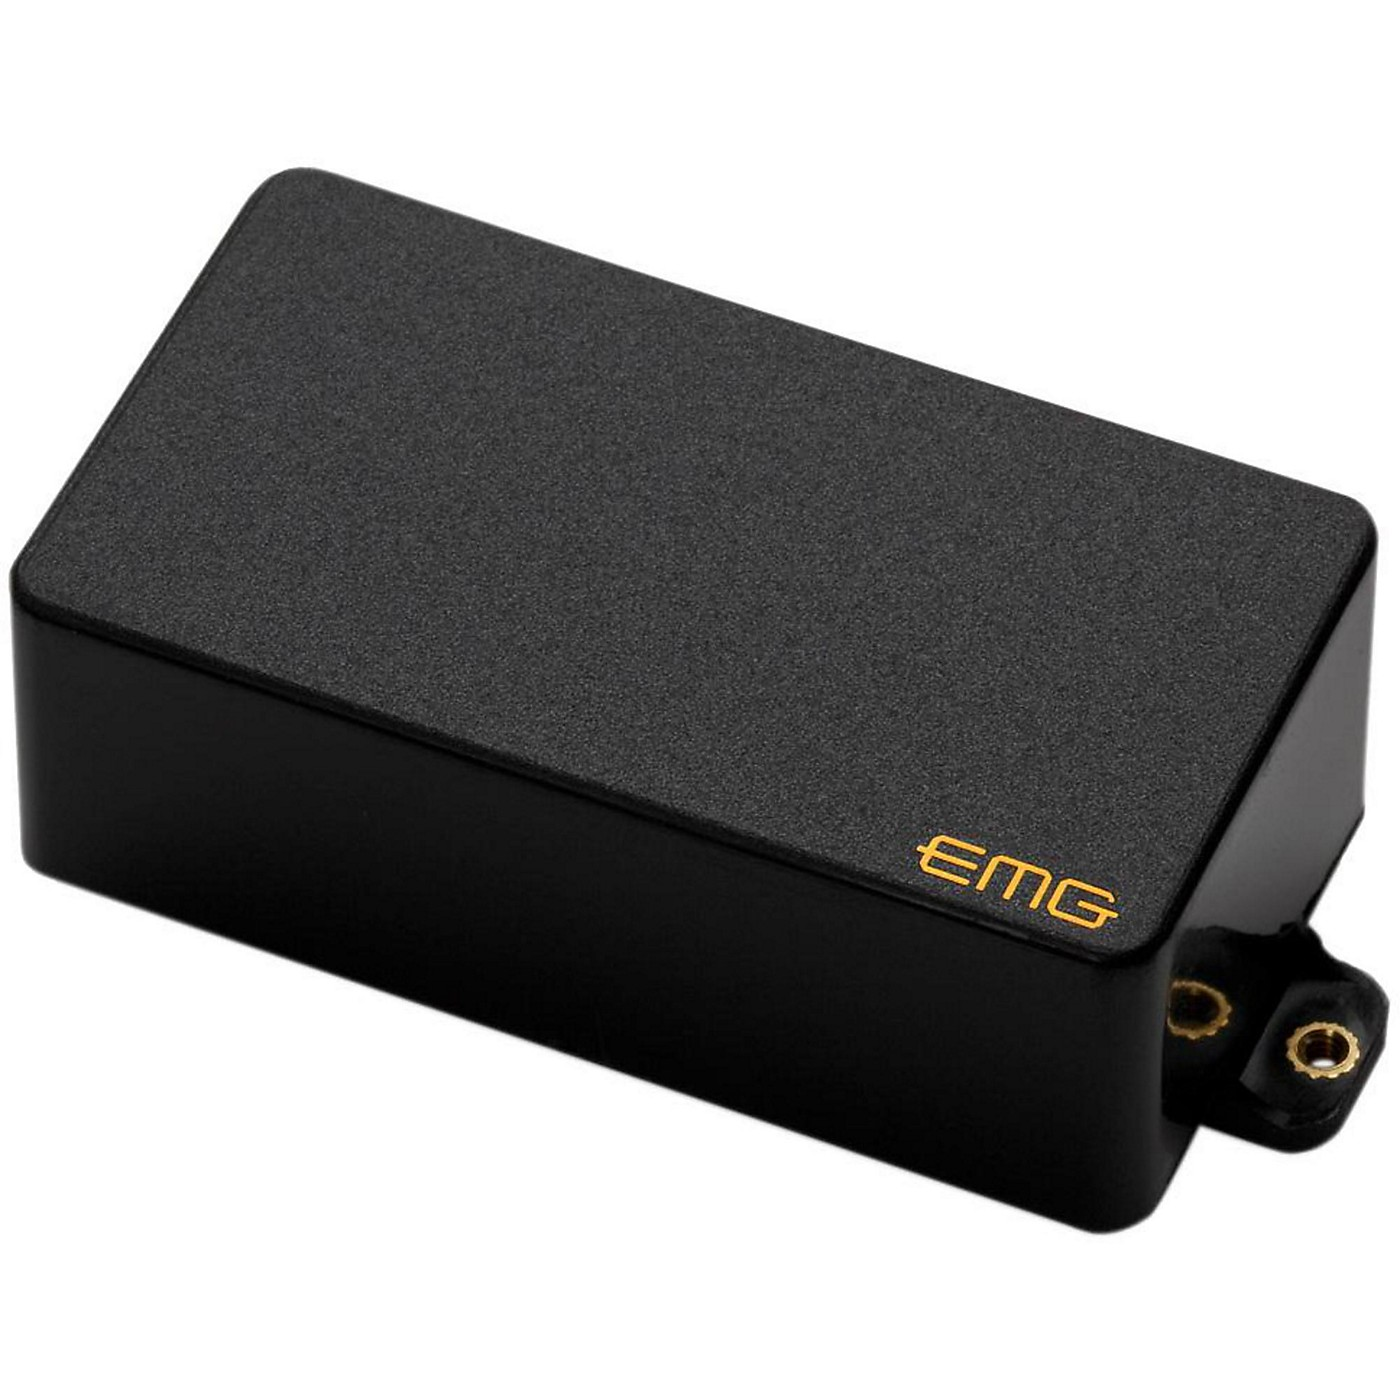 EMG EMG-81TW Active Dual-Mode Humbucker Guitar Pickup thumbnail